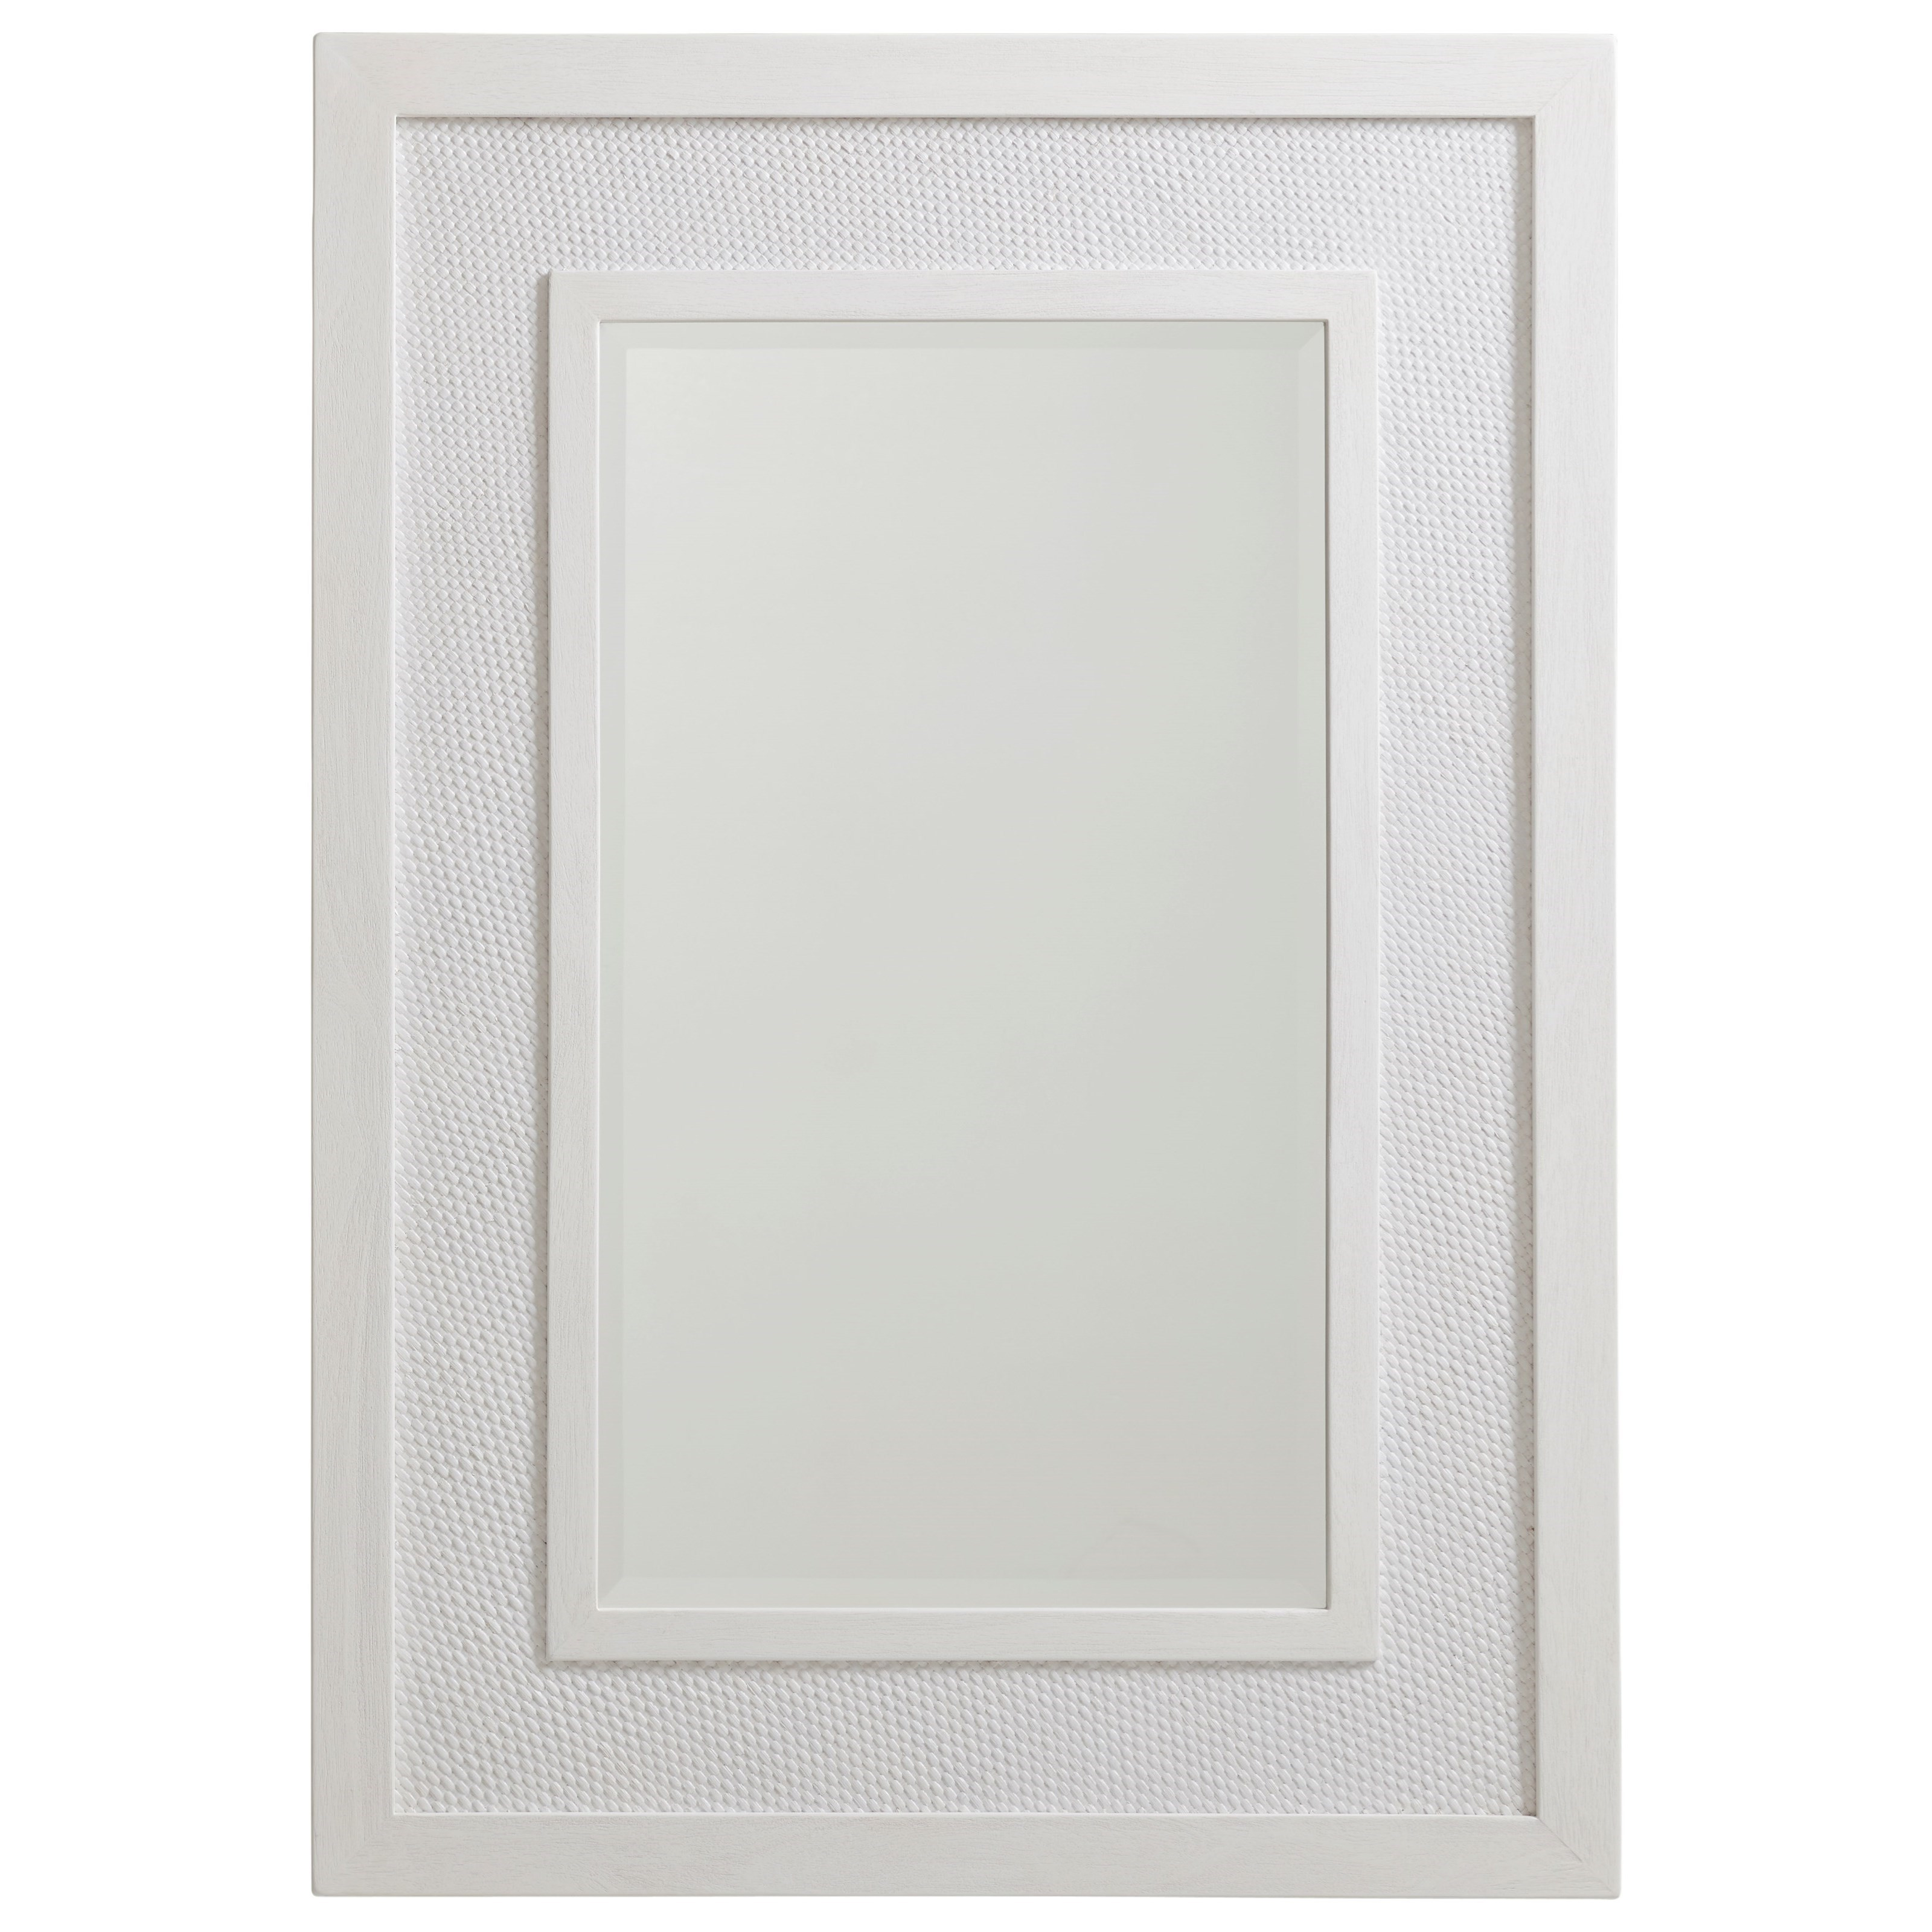 Ocean Breeze Granada Rectangular Mirror by Tommy Bahama Home at Stuckey Furniture